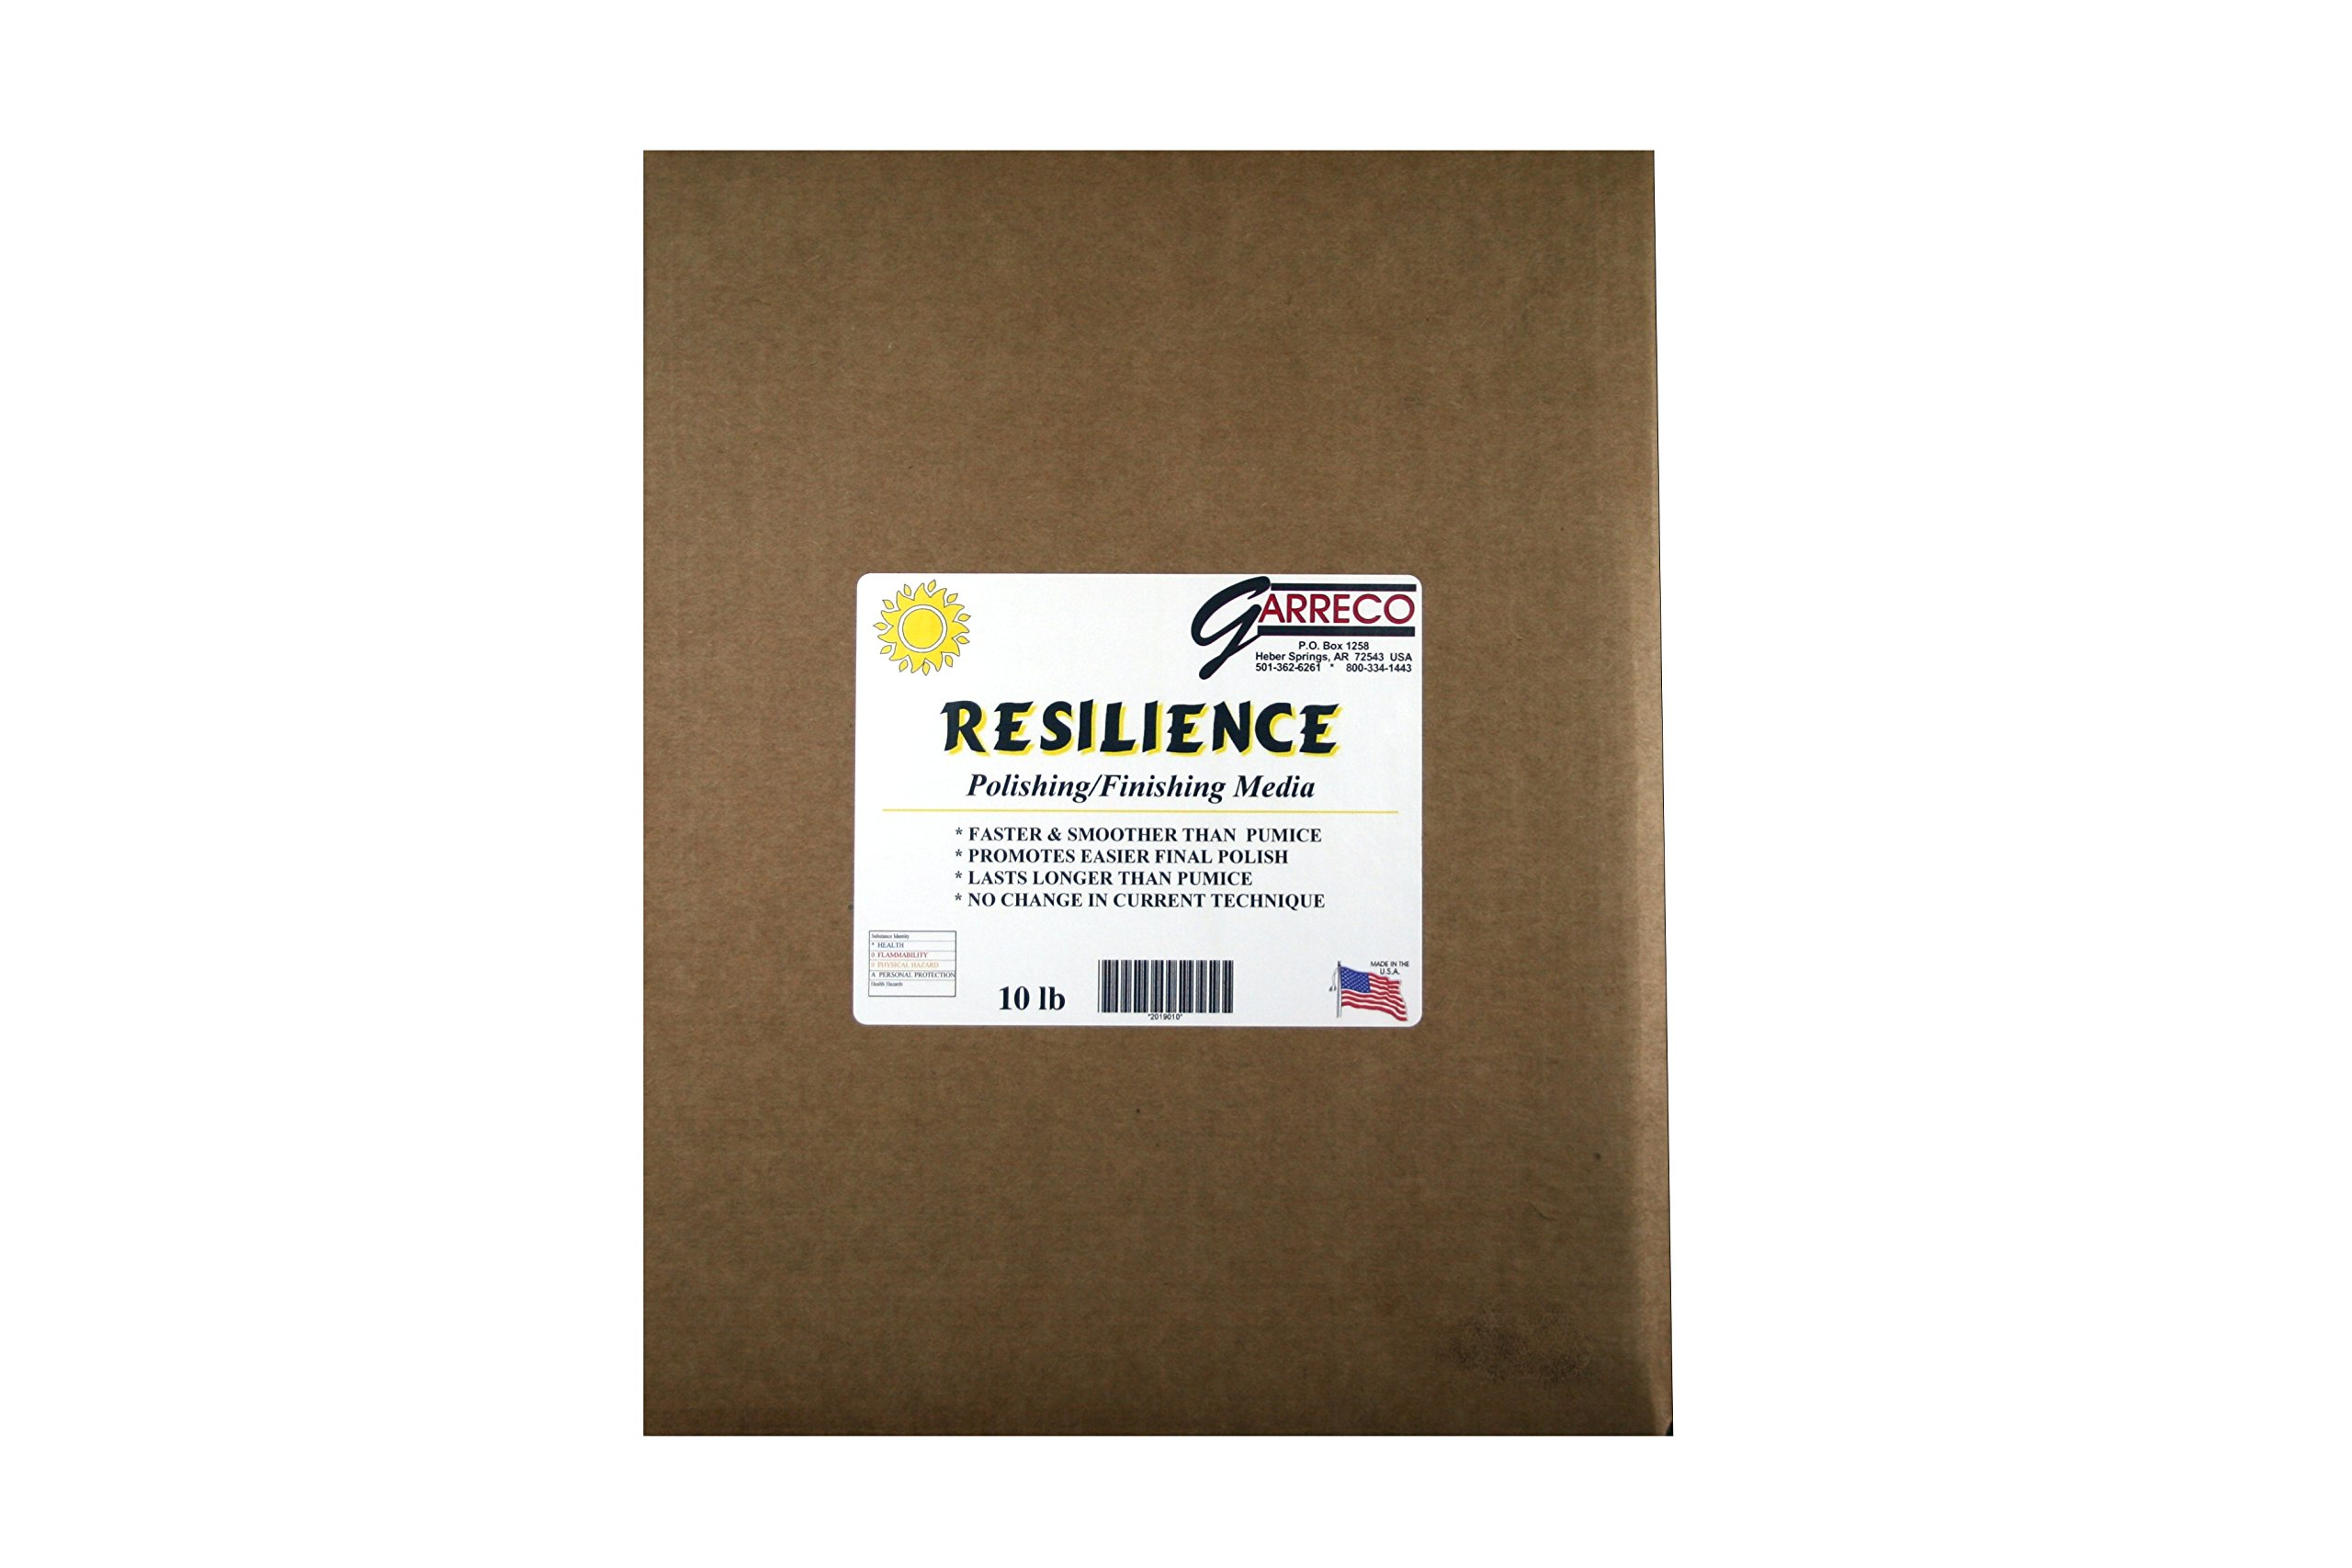 Garreco 2019010 Dental Resilience Acrylic Finishing Abrasive Media, Pumice Substitute, 10 lb Jar